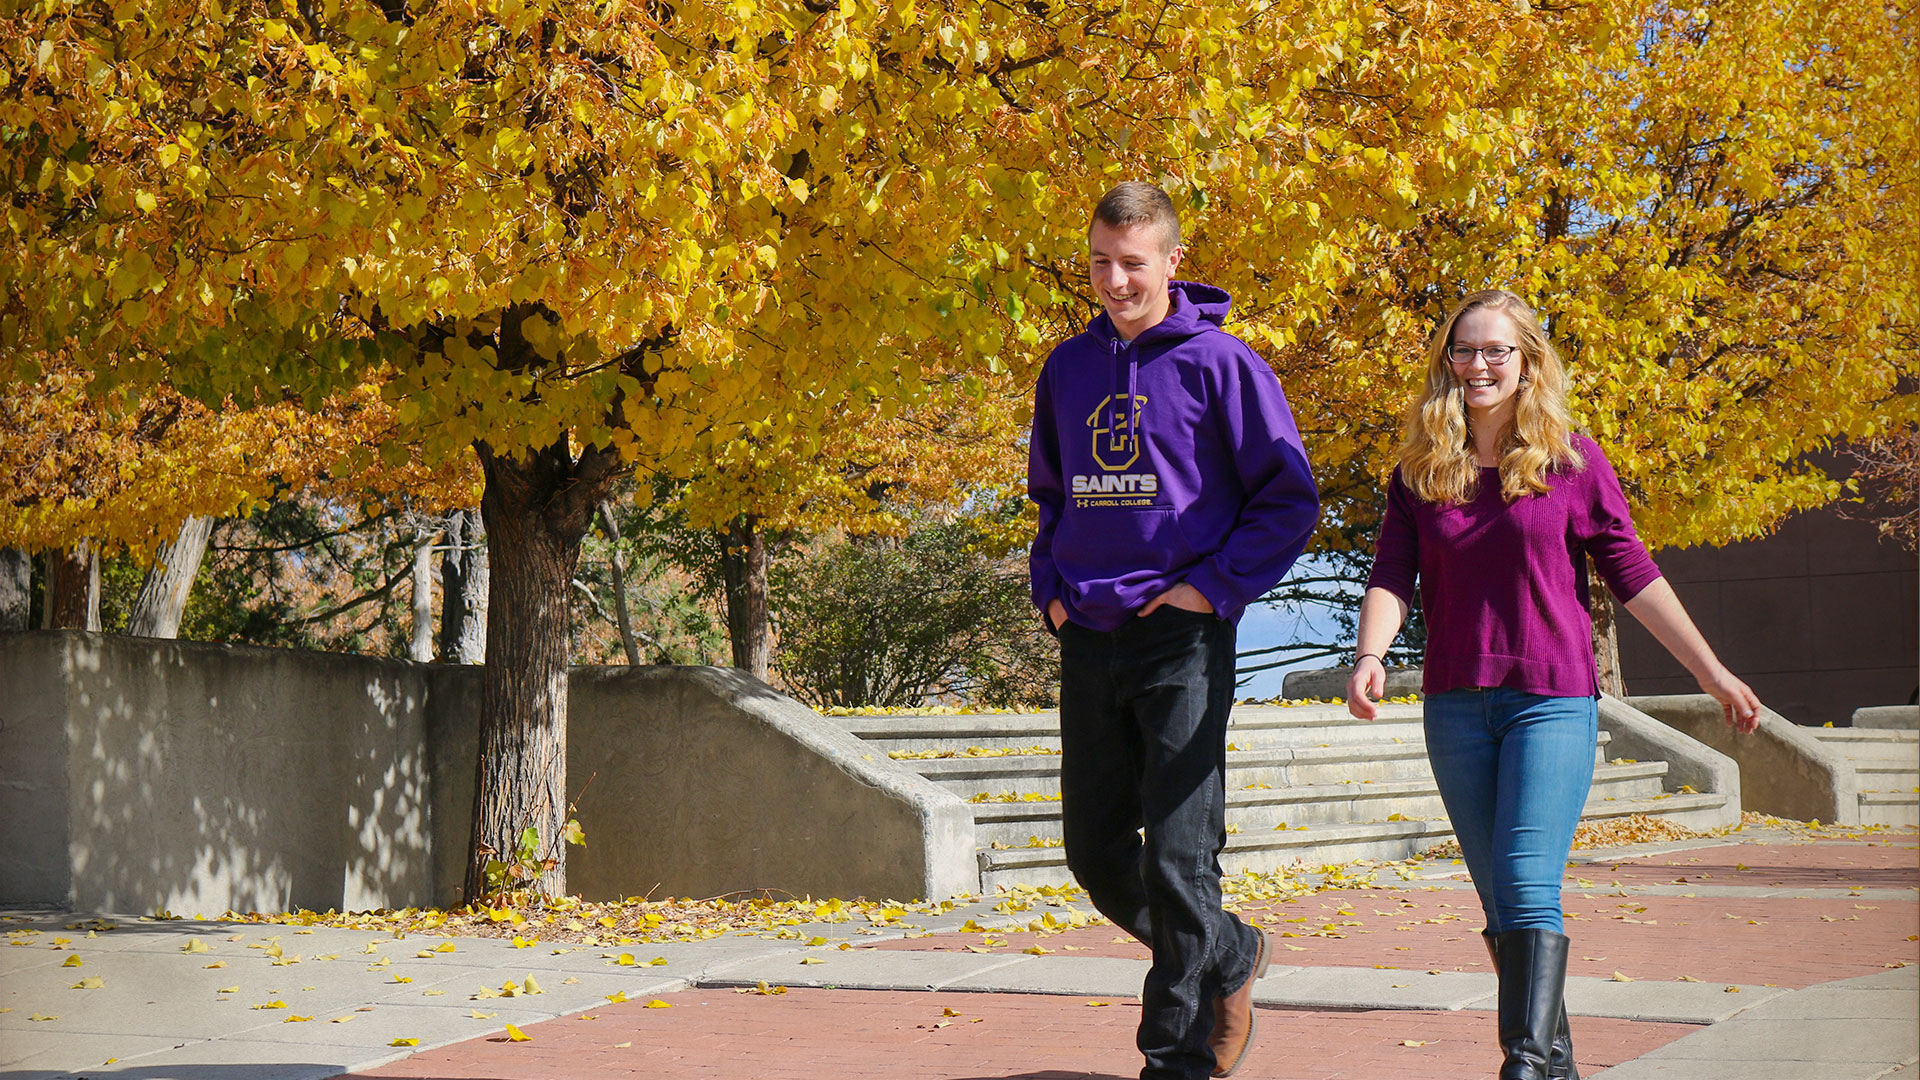 Image of Carroll Students walking on campus in the fall